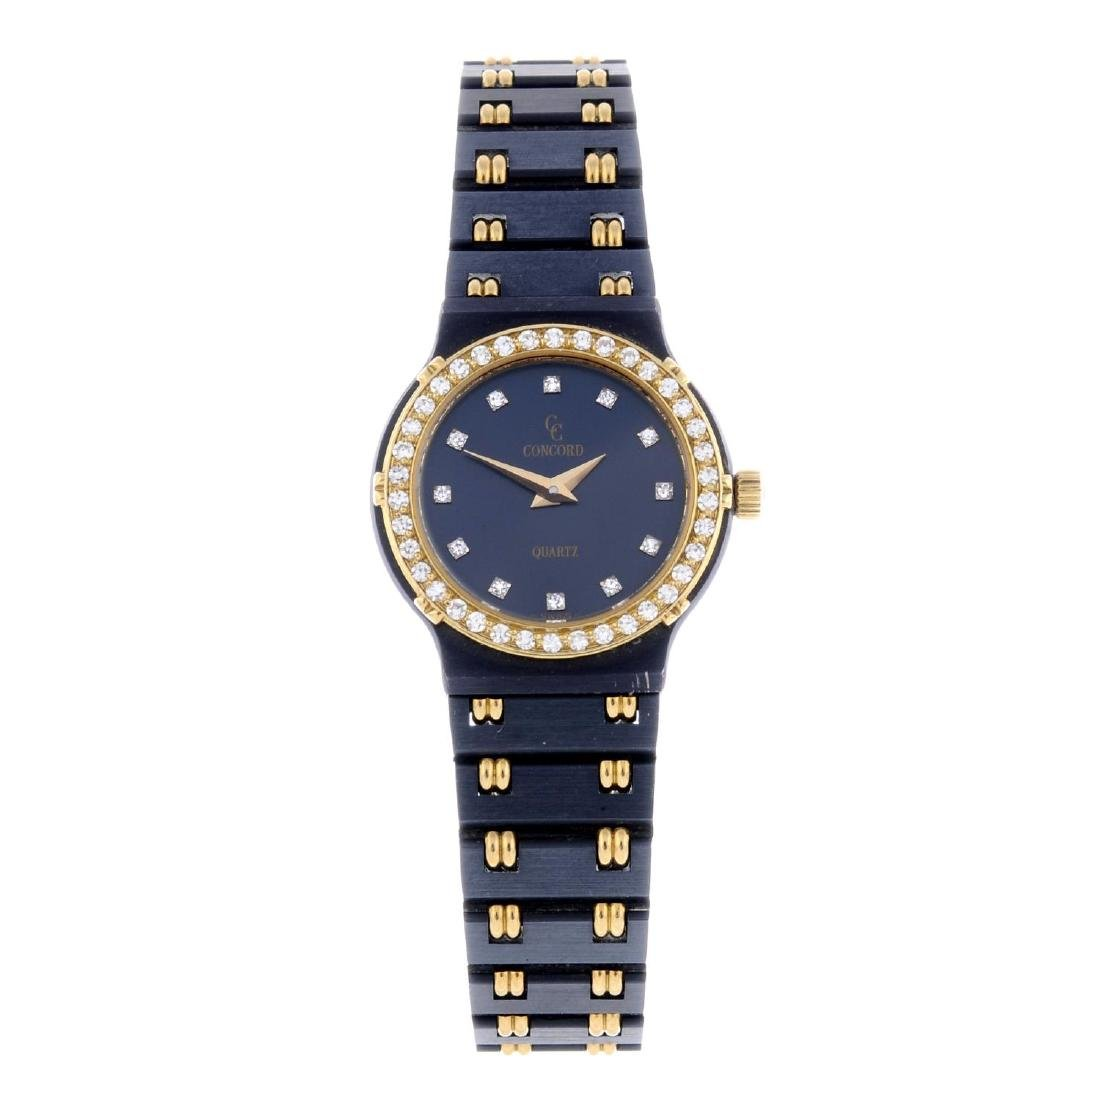 CONCORD - a lady's La Costa bracelet watch. PVD-treated